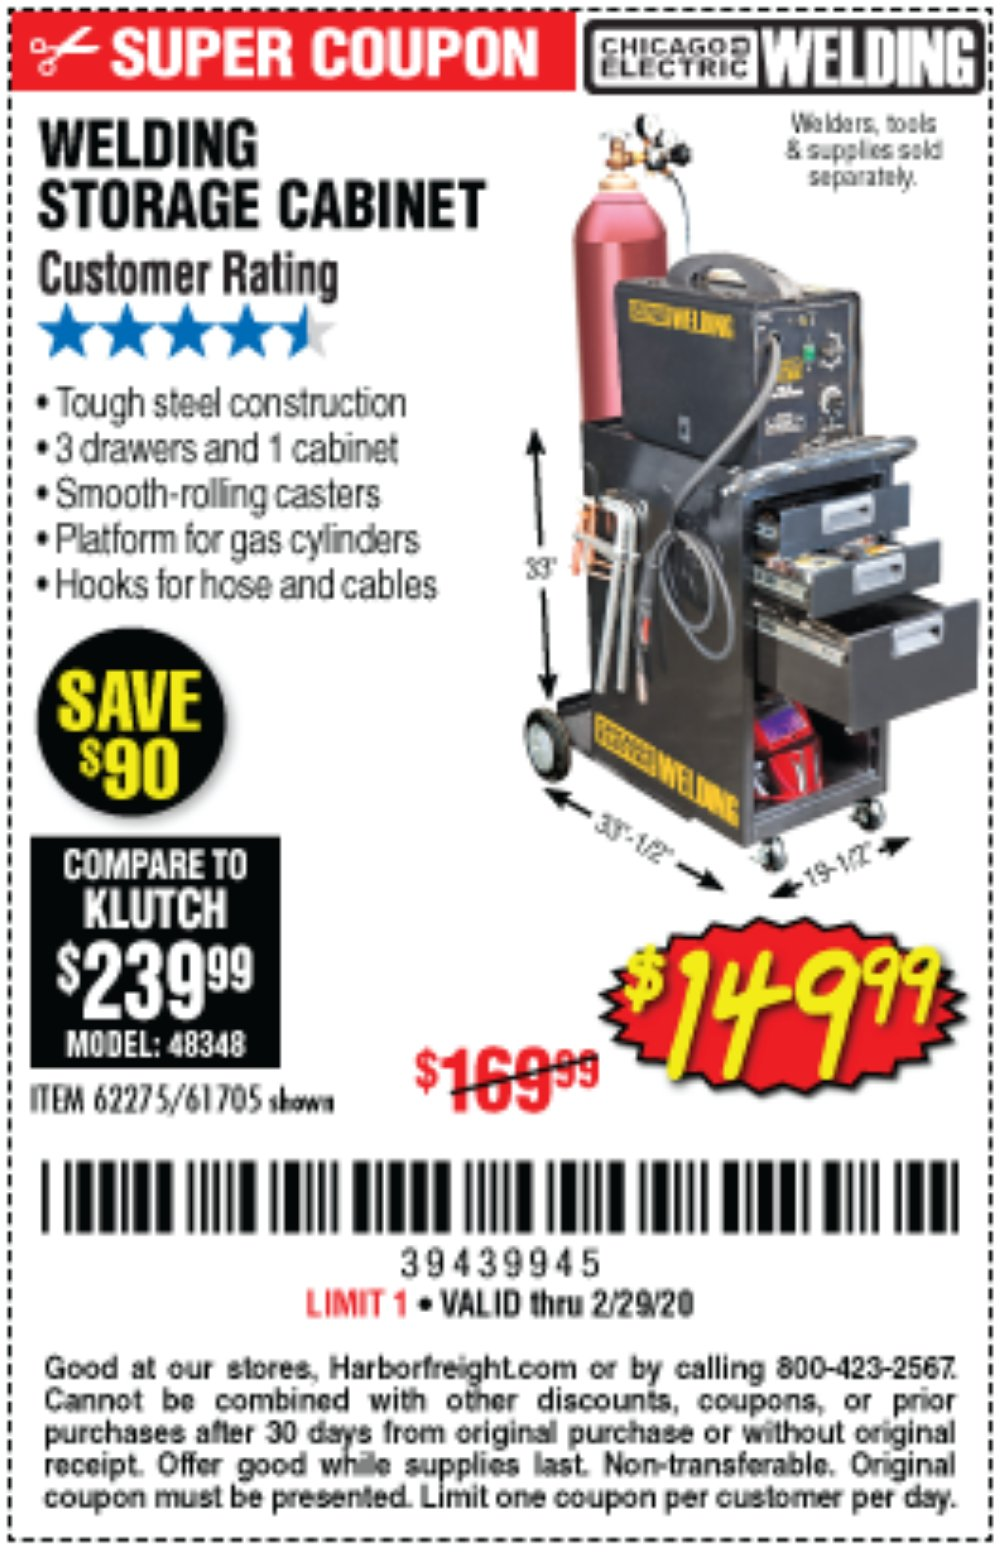 Harbor Freight Coupon, HF Coupons - Welding Storage Cabinet